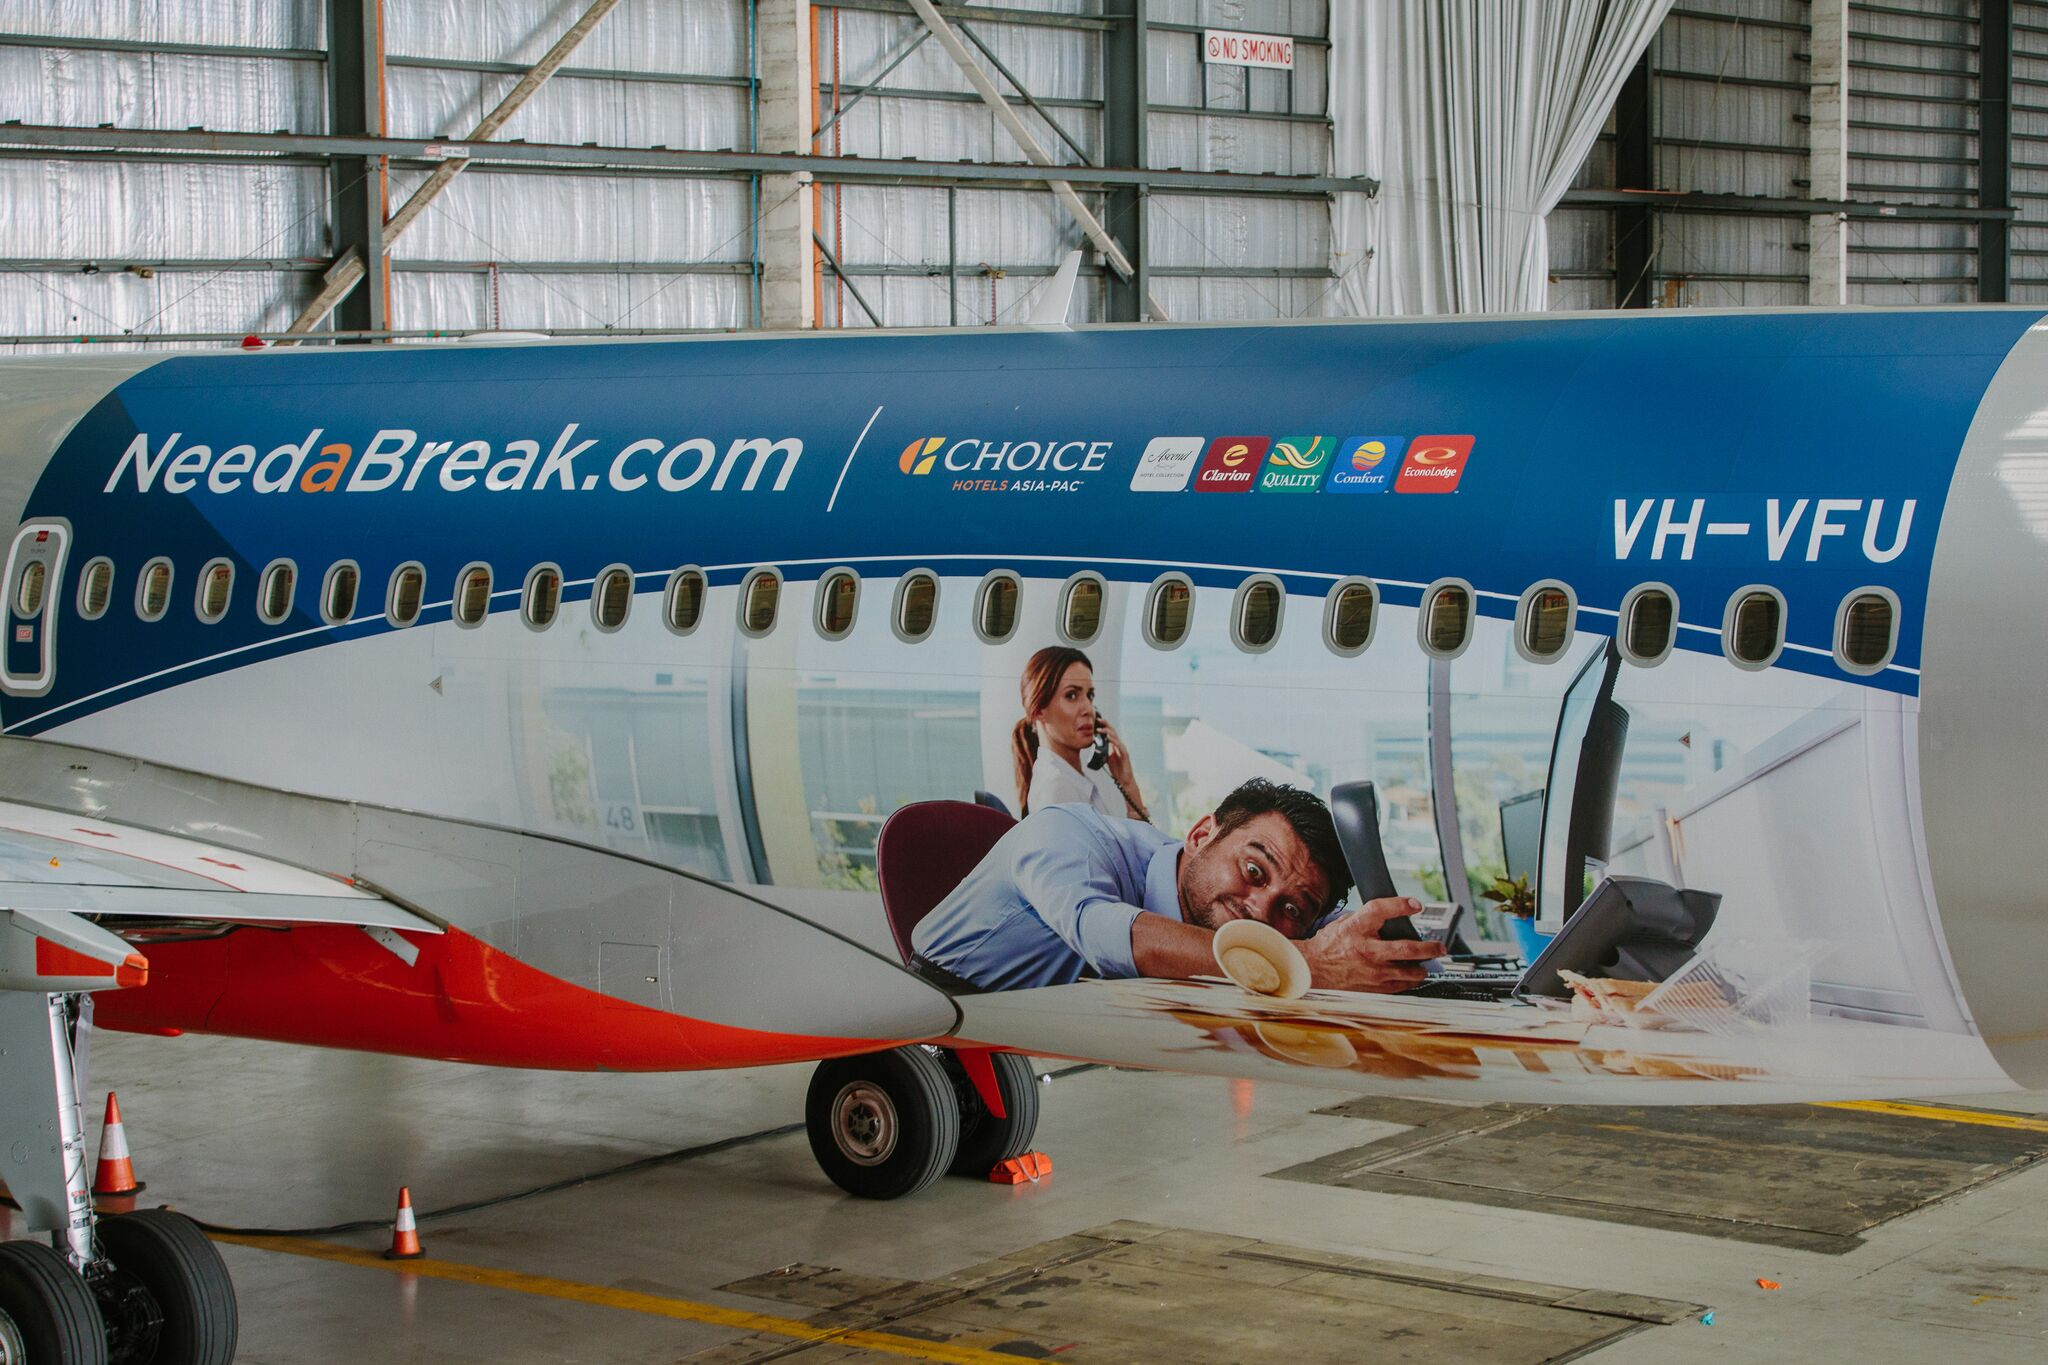 'Need A Break' campaign (Choice Hotels Asia-Pac)